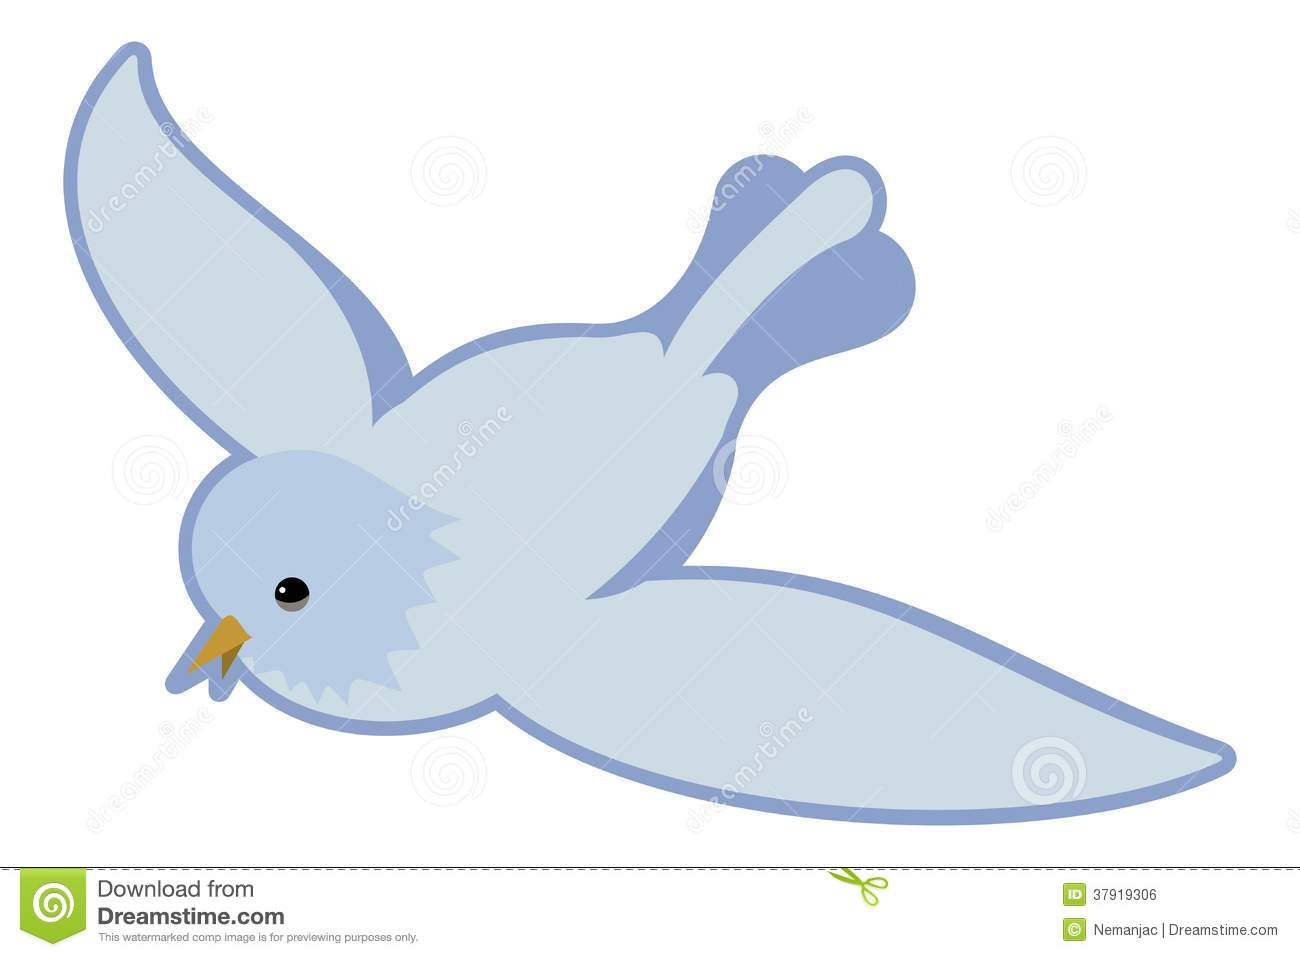 bird flying cartoon concept stock illustration illustration of rh dreamstime com flying bird cartoon pictures flying bird cartoon animation